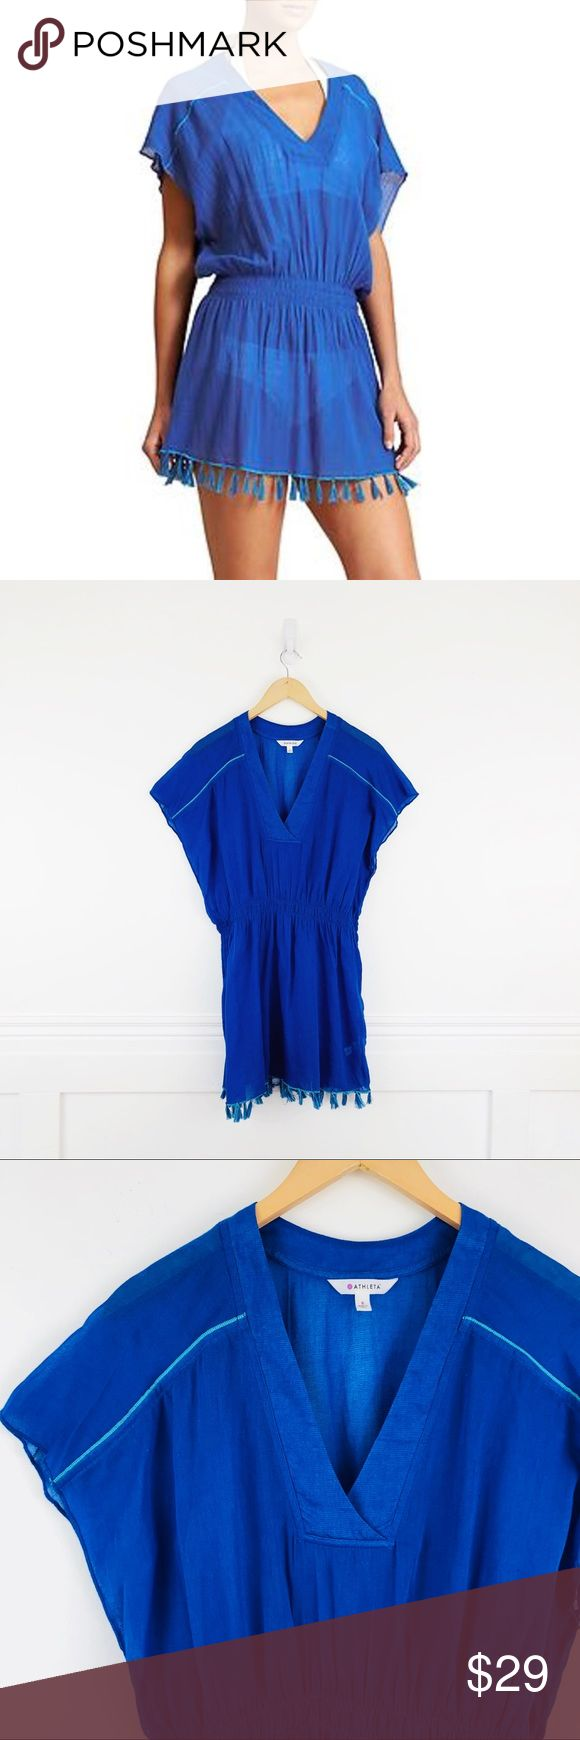 "Athleta Bright Side Coverup Athleta Bright Side Swimsuit Coverup in Caspian Blue.  Oversized gauzy cotton coverup with tasseled ends and cinched-in waist. Deep v-neck. 100% cotton, very lightweight, sheer.  Size S.  Chest 19"", length 31"". Athleta Swim Coverups"